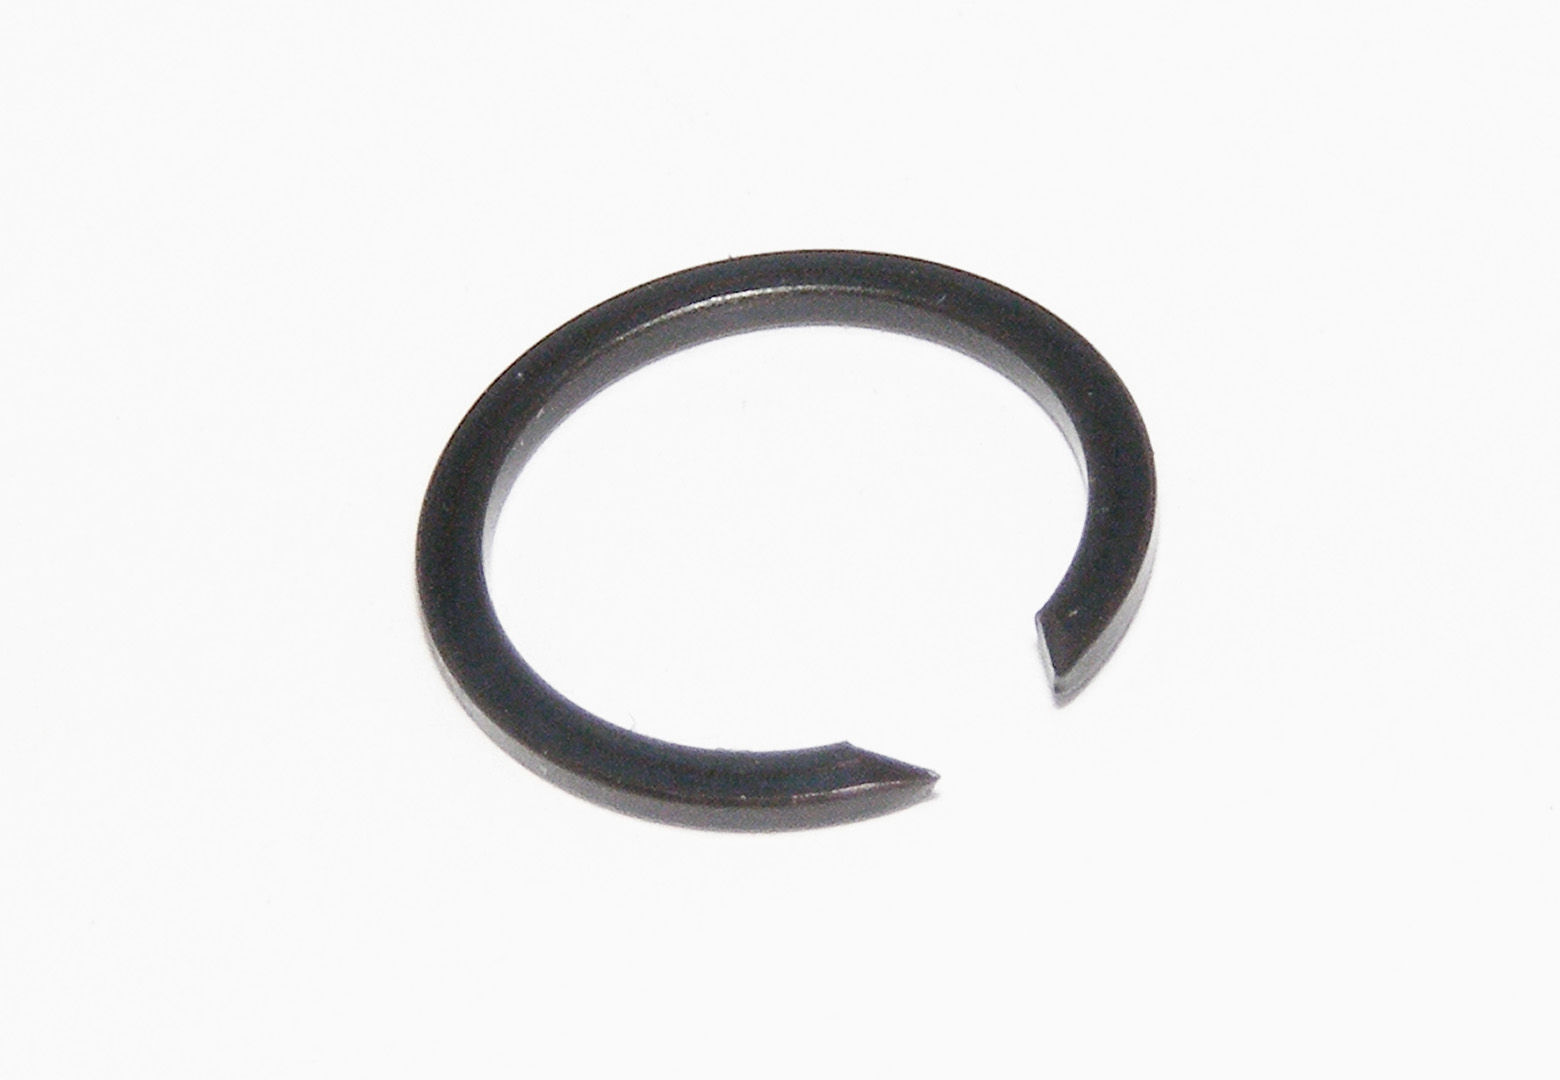 SNAP RING EXTERNAL METRIC NFCSW